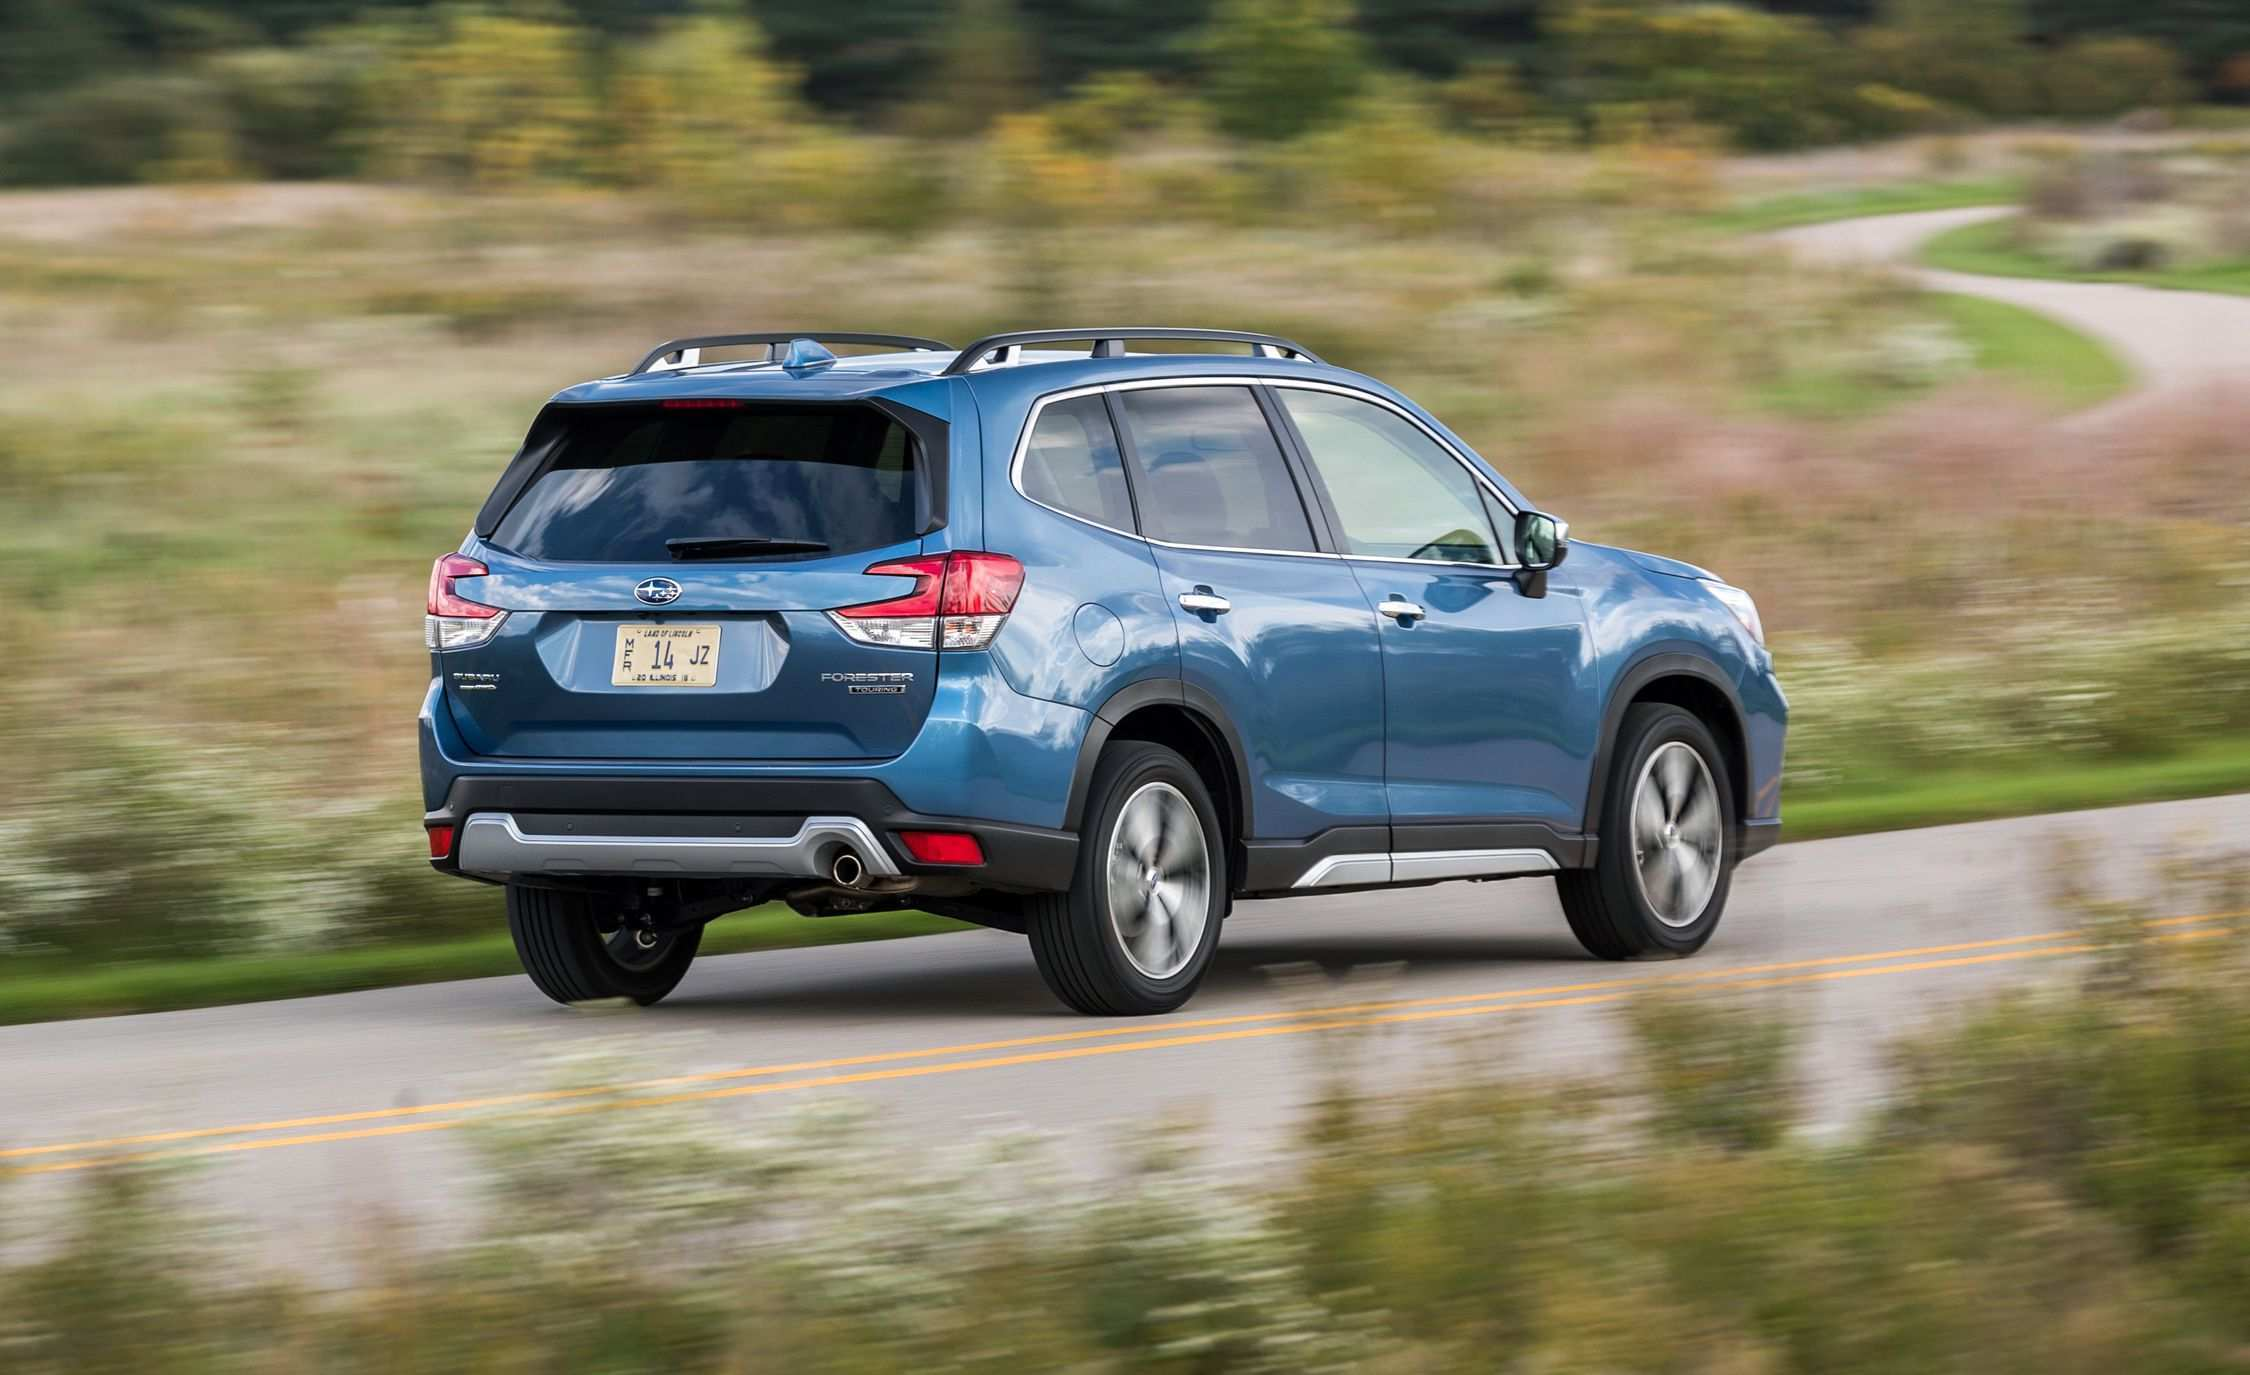 94 New 2019 Subaru Forester Xt Touring History by 2019 Subaru Forester Xt Touring